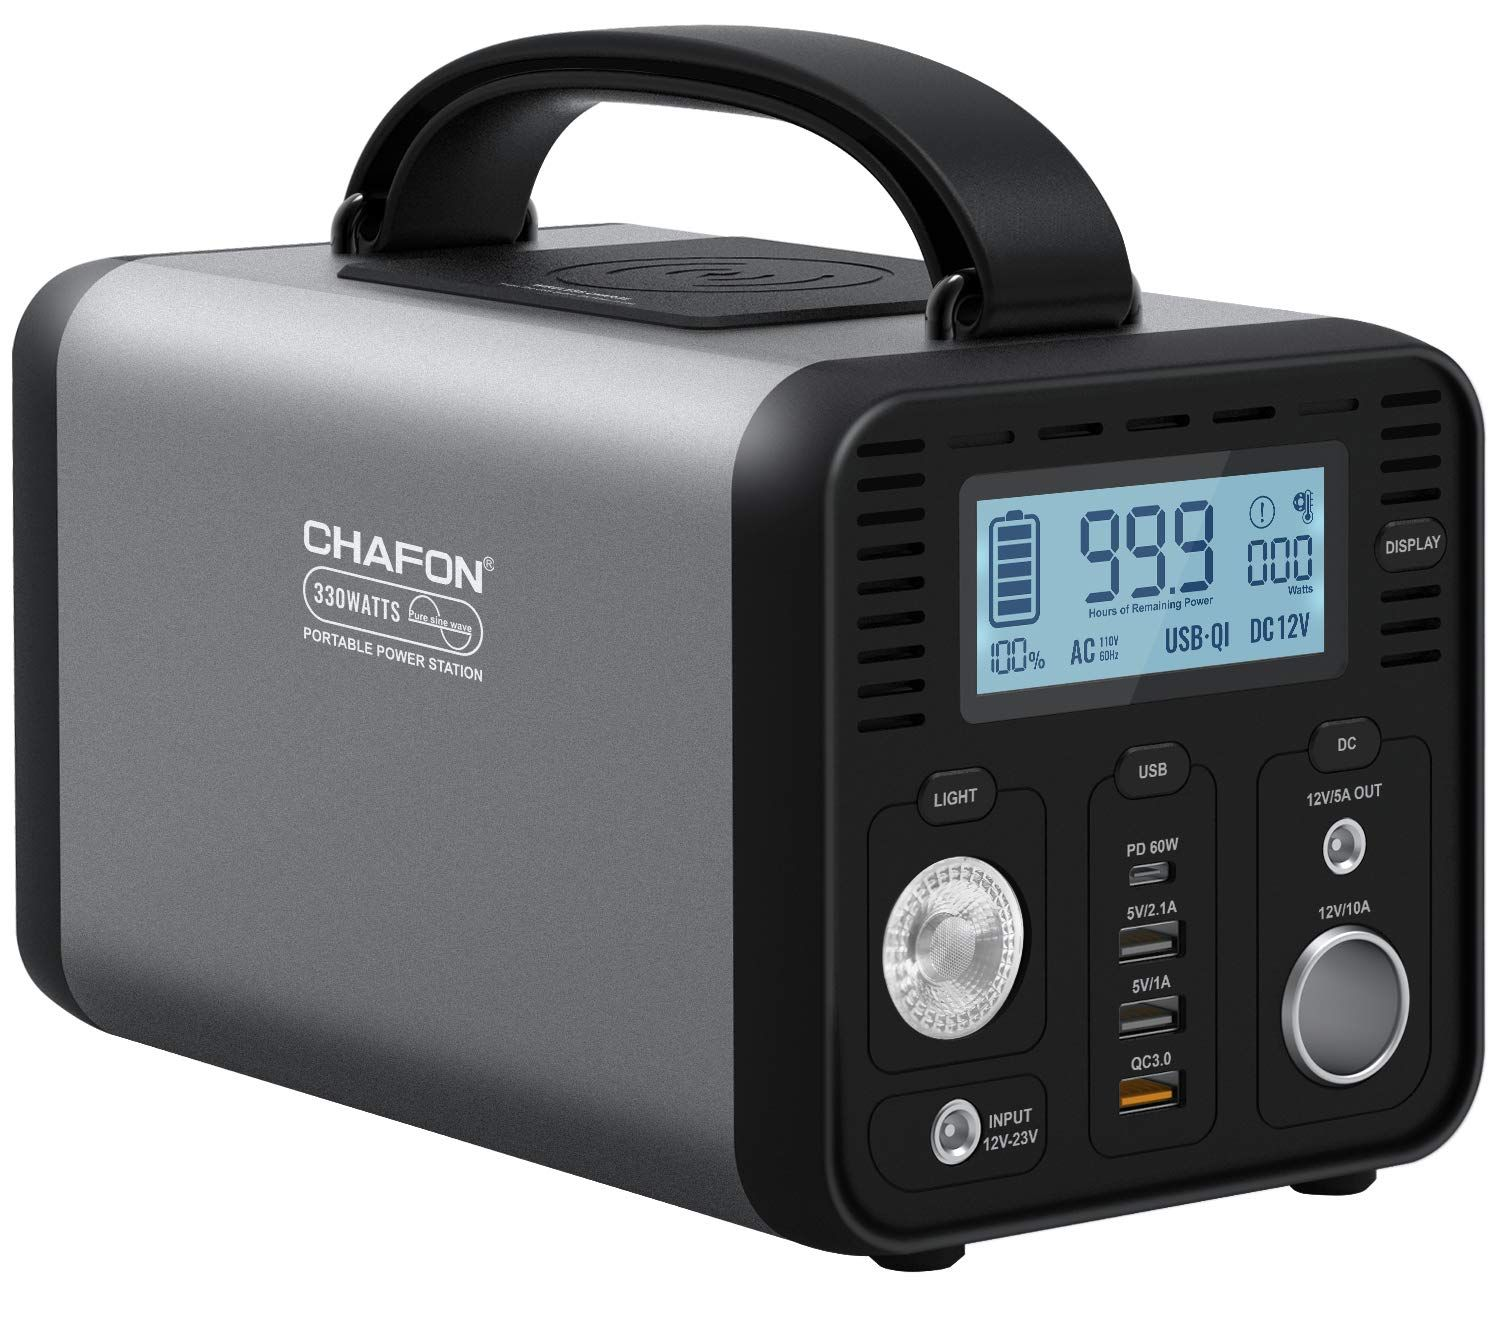 Chafon Portable Power Station Cf290 296wh Lithium Battery Backup 110v 330w Pure Sine Wave Ac Outlet Solar Generator For Outdoors Camping Road Trips Emergency